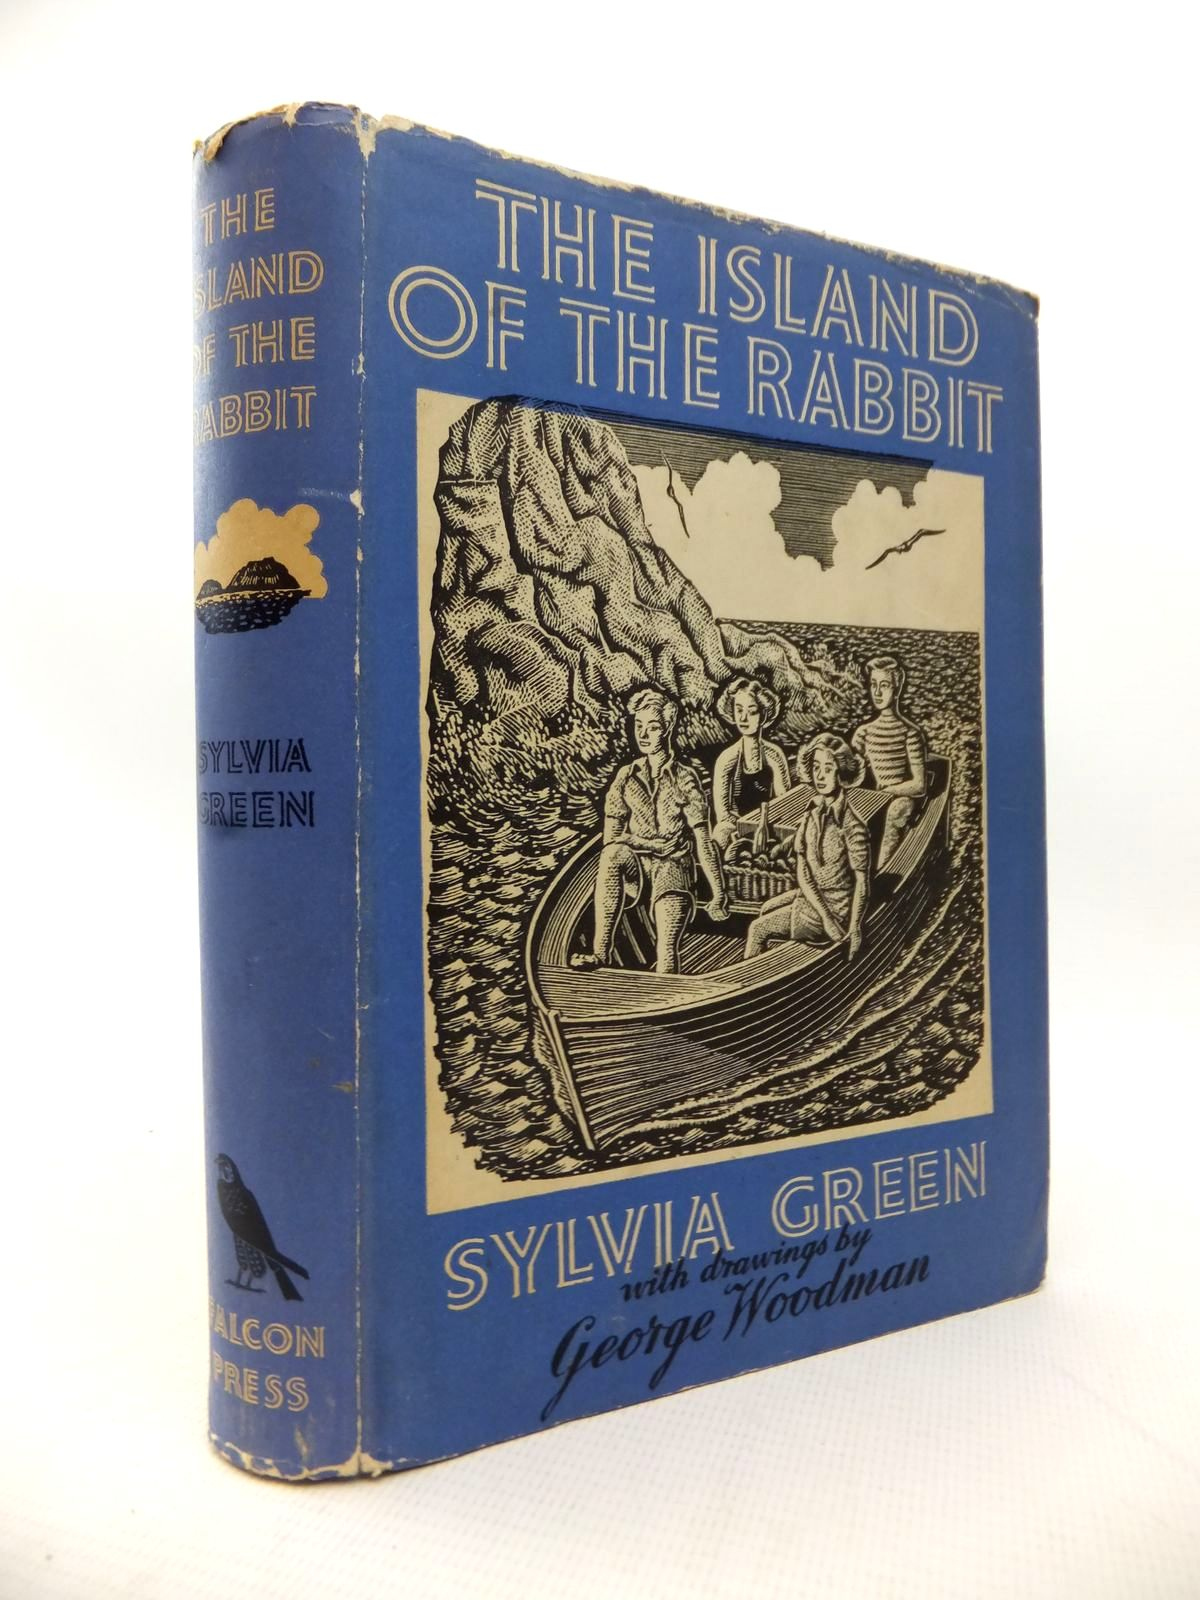 Photo of THE ISLAND OF THE RABBIT written by Green, Sylvia illustrated by Woodman, George published by The Falcon Press Ltd. (STOCK CODE: 1814130)  for sale by Stella & Rose's Books